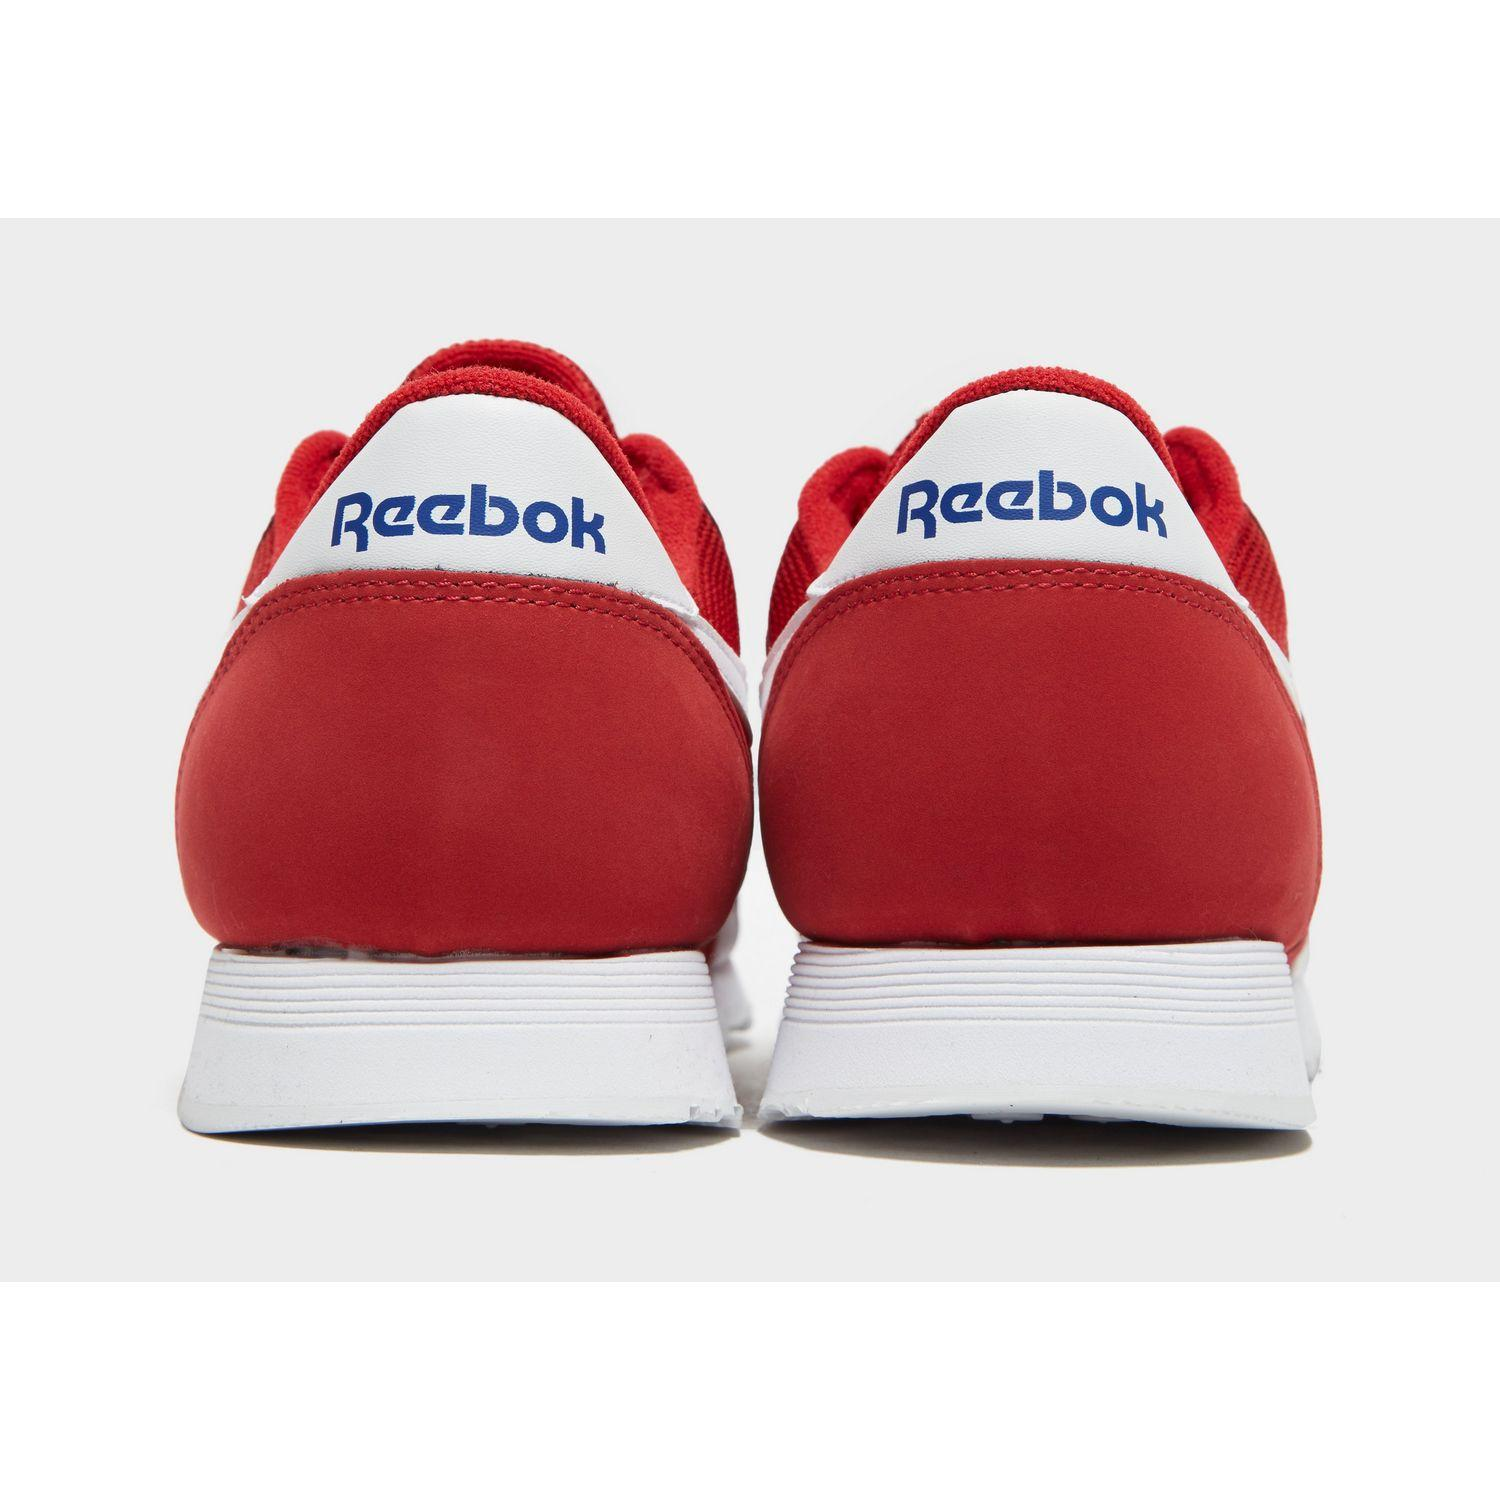 a39397b9d733e Reebok - Red Classic Nylon for Men - Lyst. View fullscreen